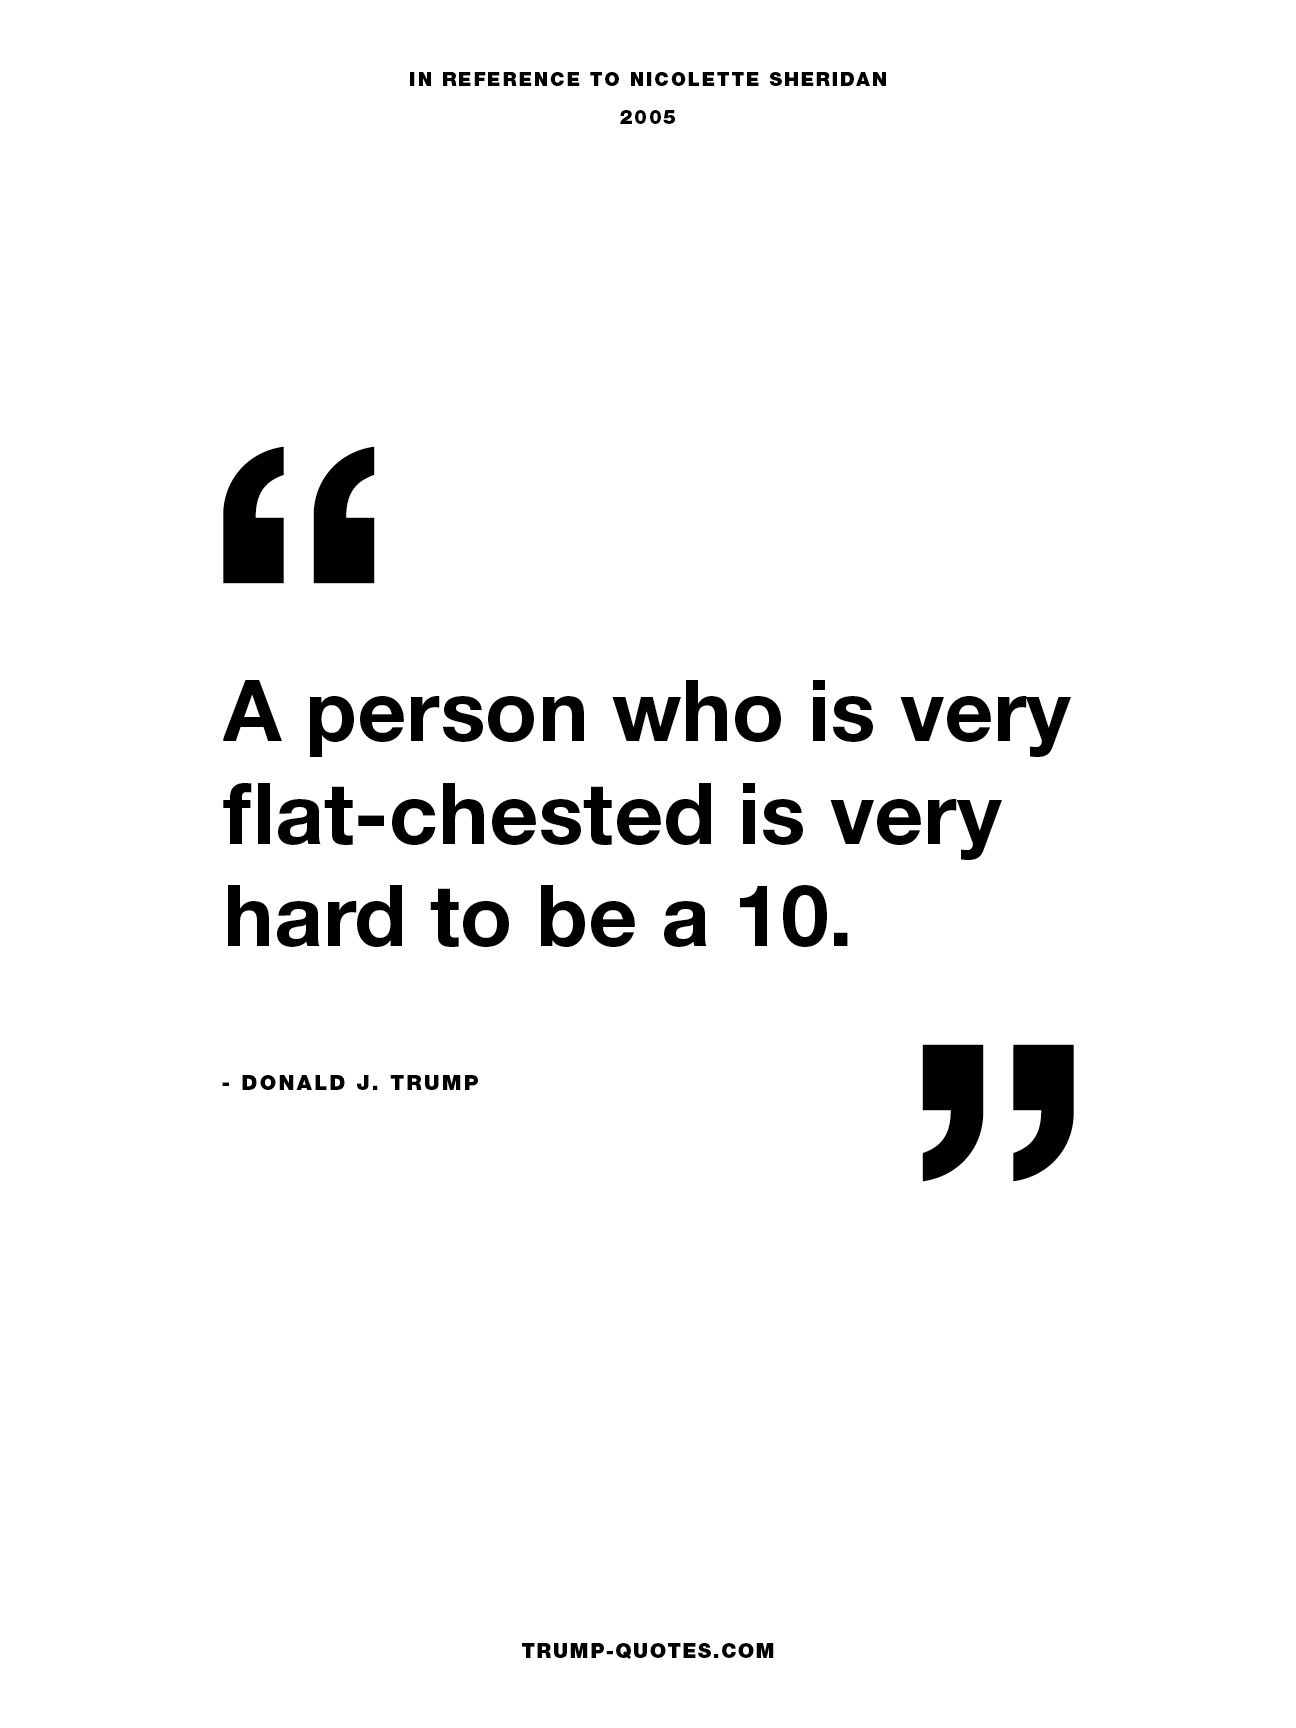 A person who is  very flat-chested is  very hard to be a 10.